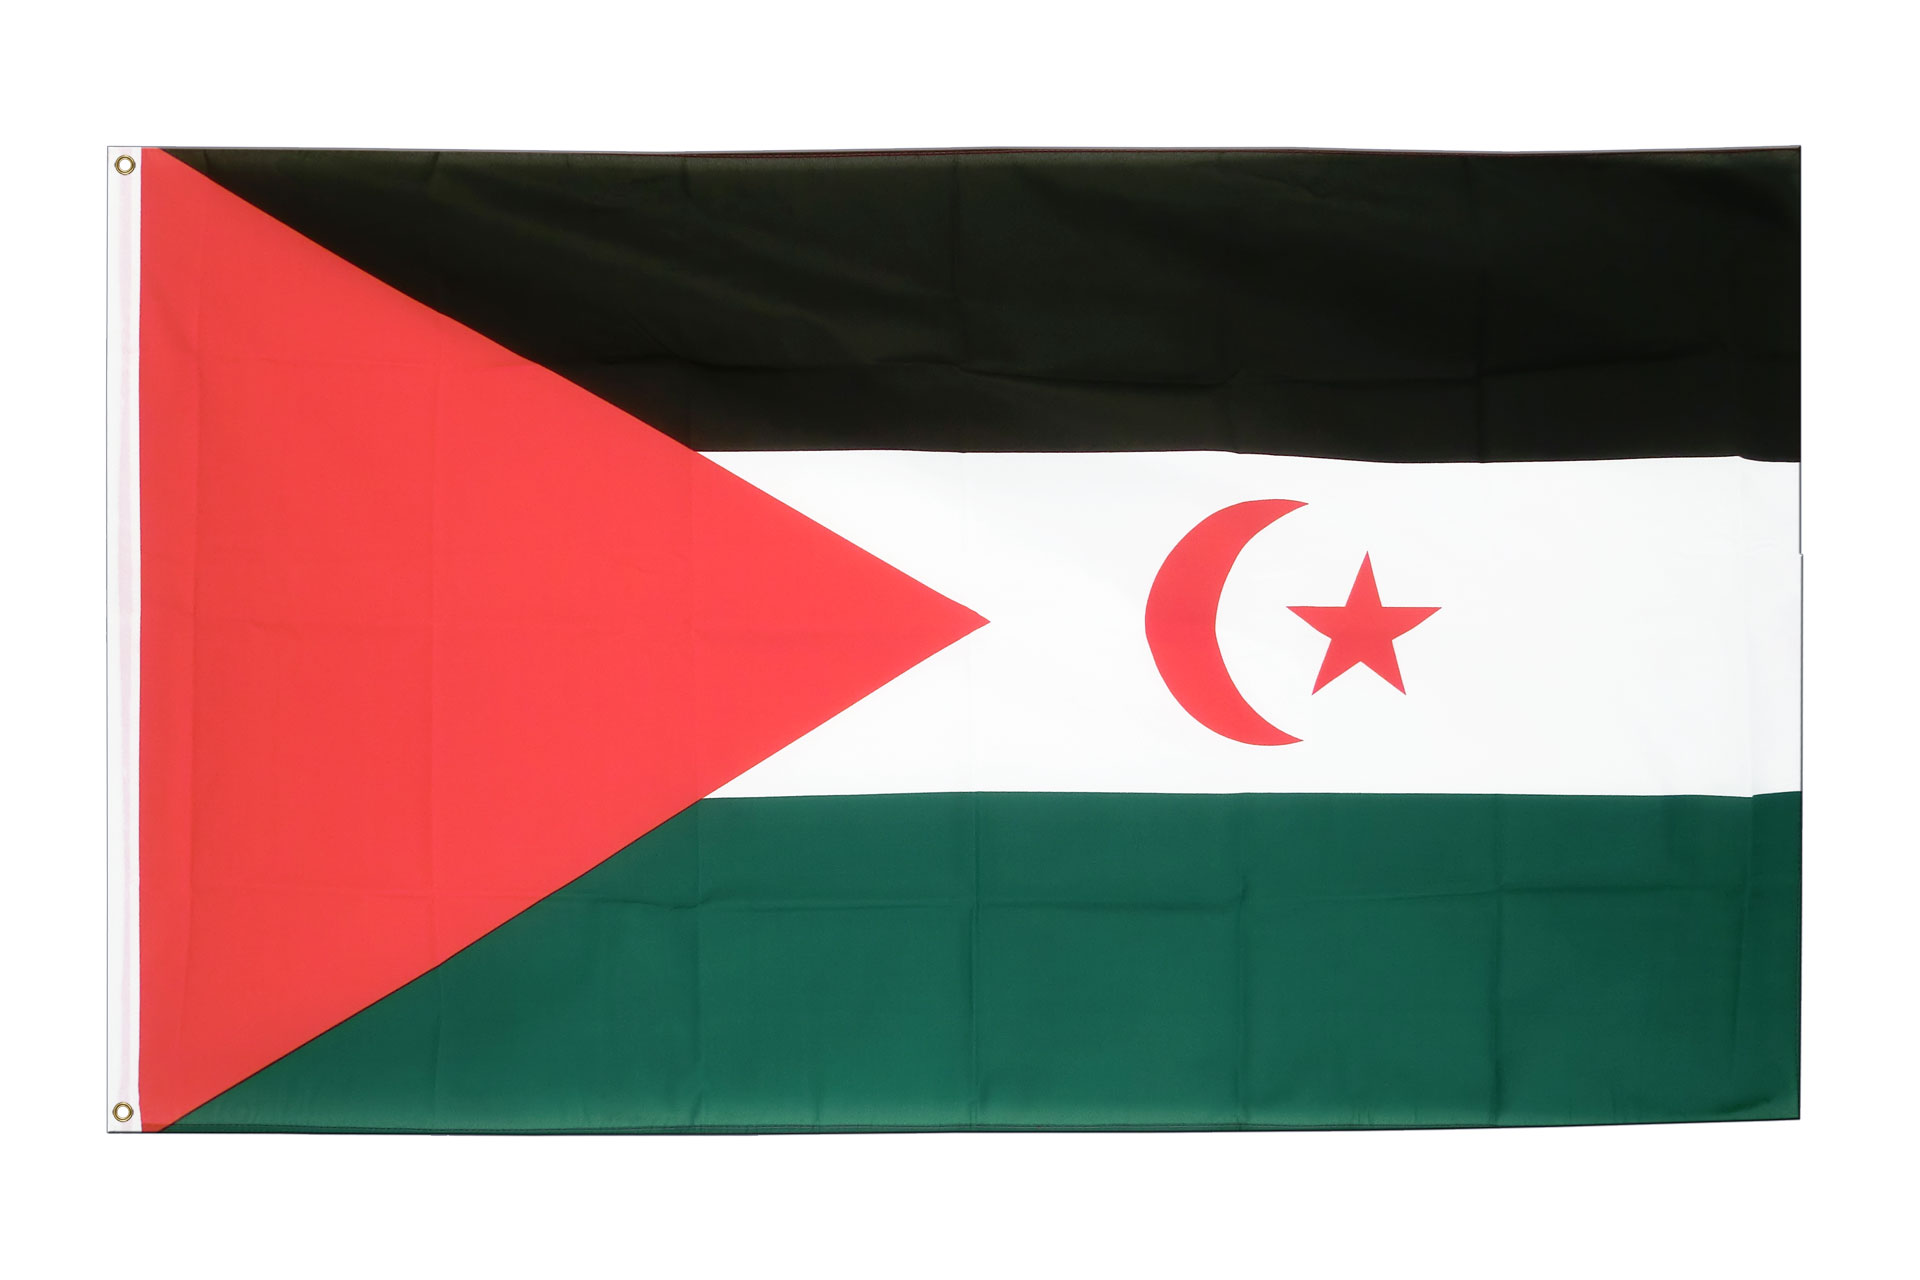 Buy Western Sahara Flag - 3x5 ft (90x150 cm) - Royal-Flags: royal-flags.co.uk/western-sahara-flag-2194.html